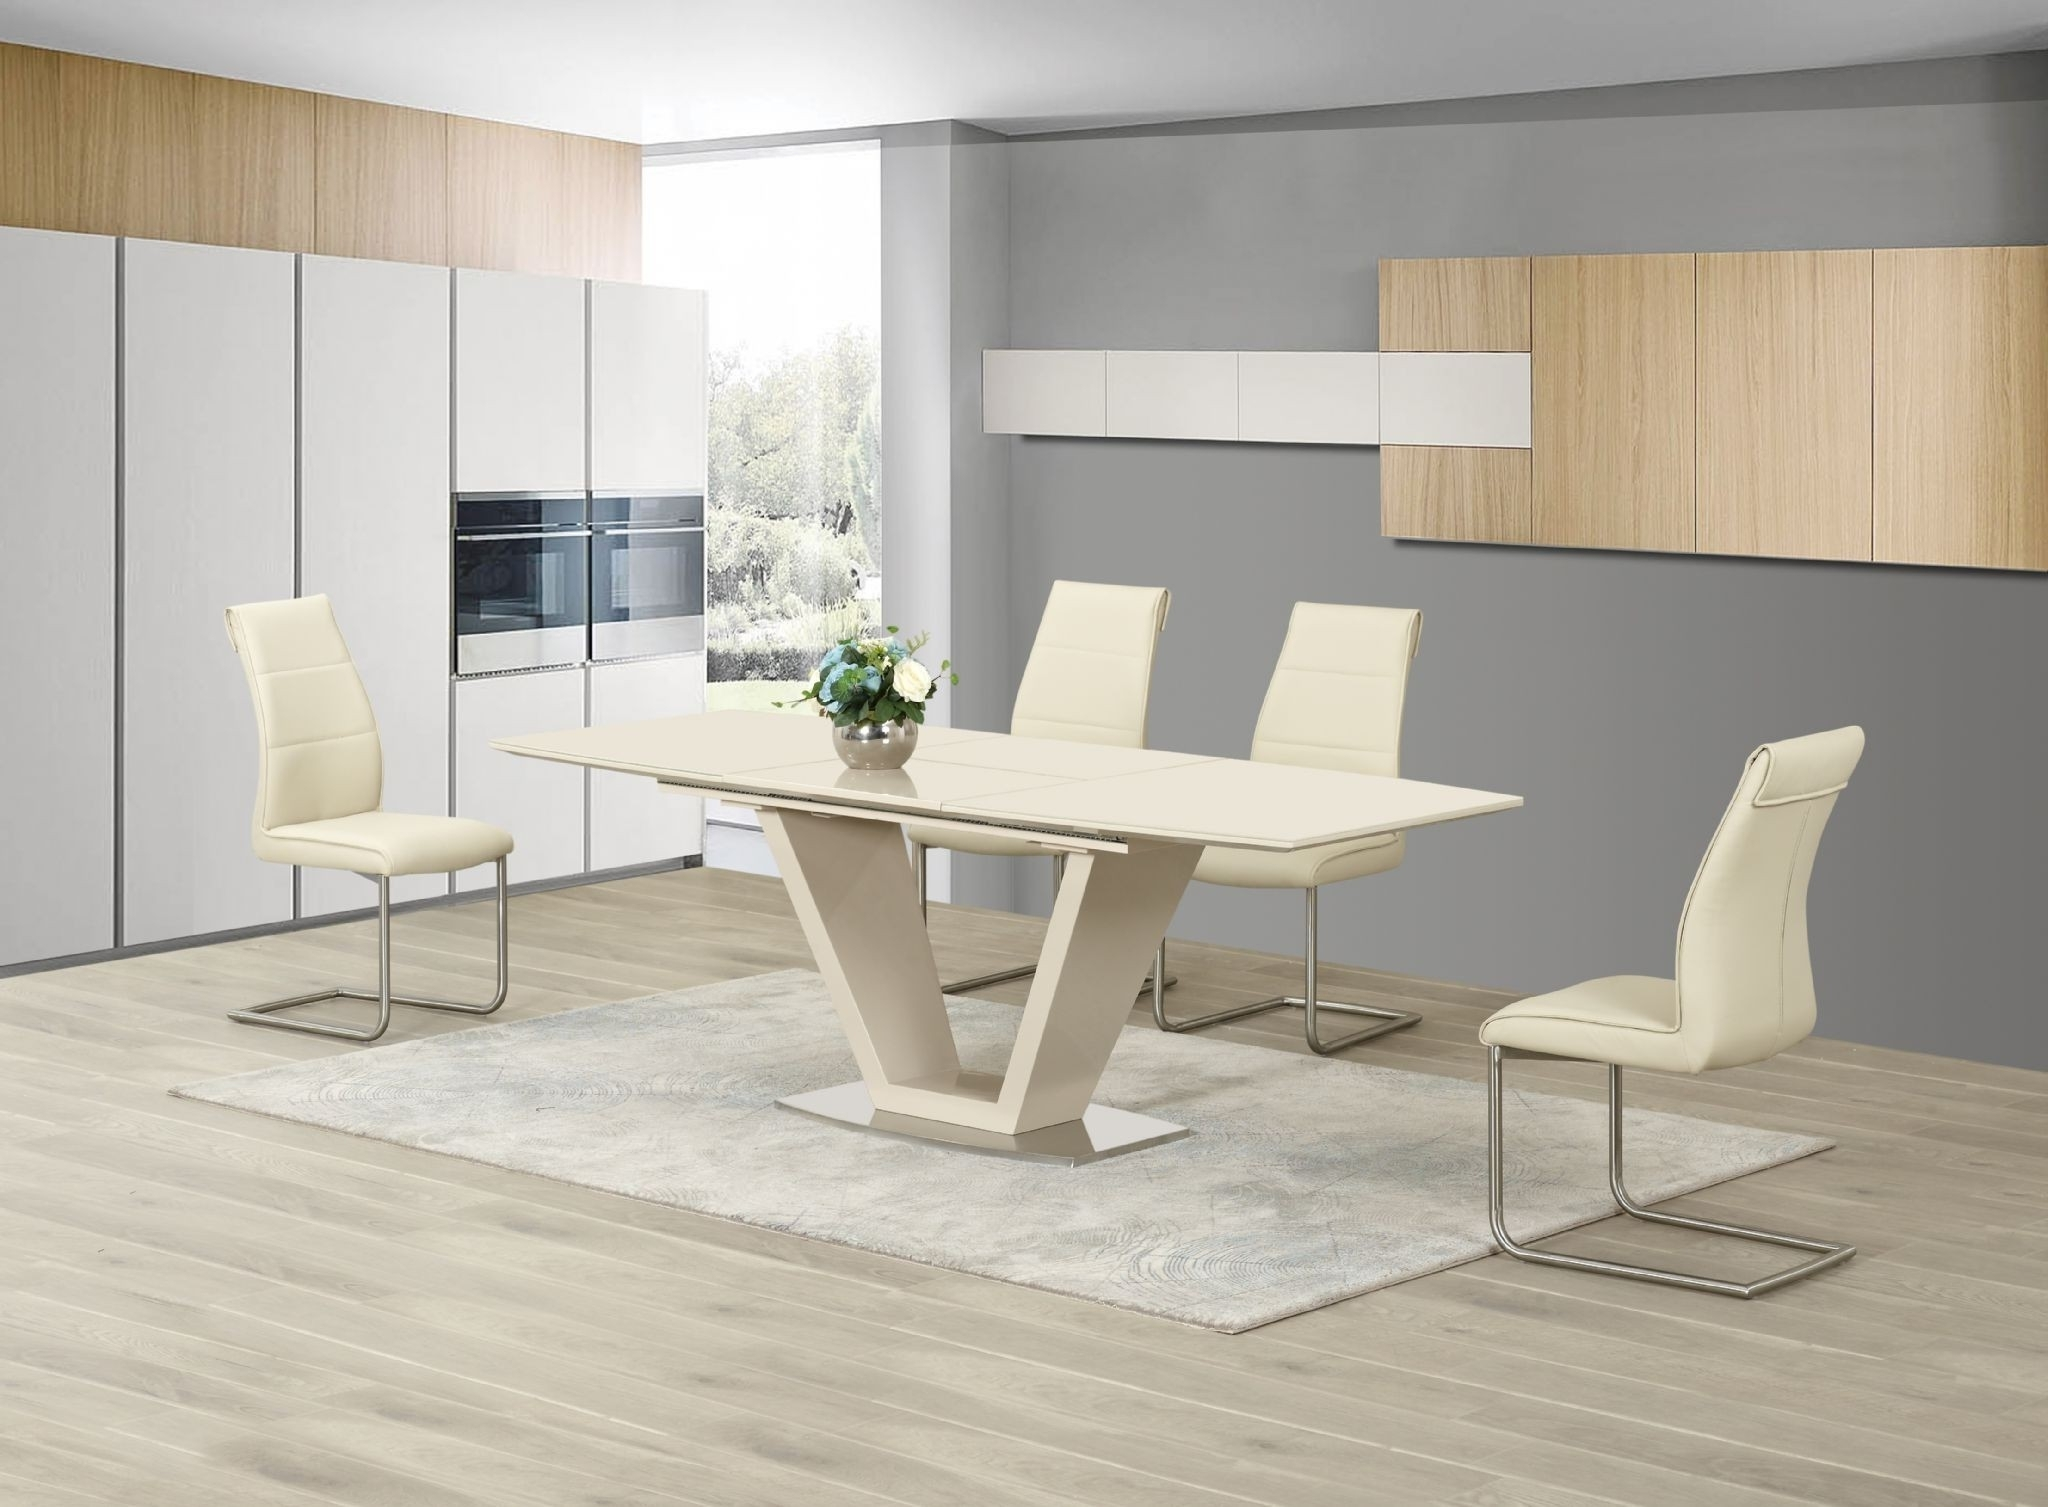 Widely Used Extended Dining Tables And Chairs In Floris Cream Gloss Extending Dining Table 160 220Cm (View 8 of 25)